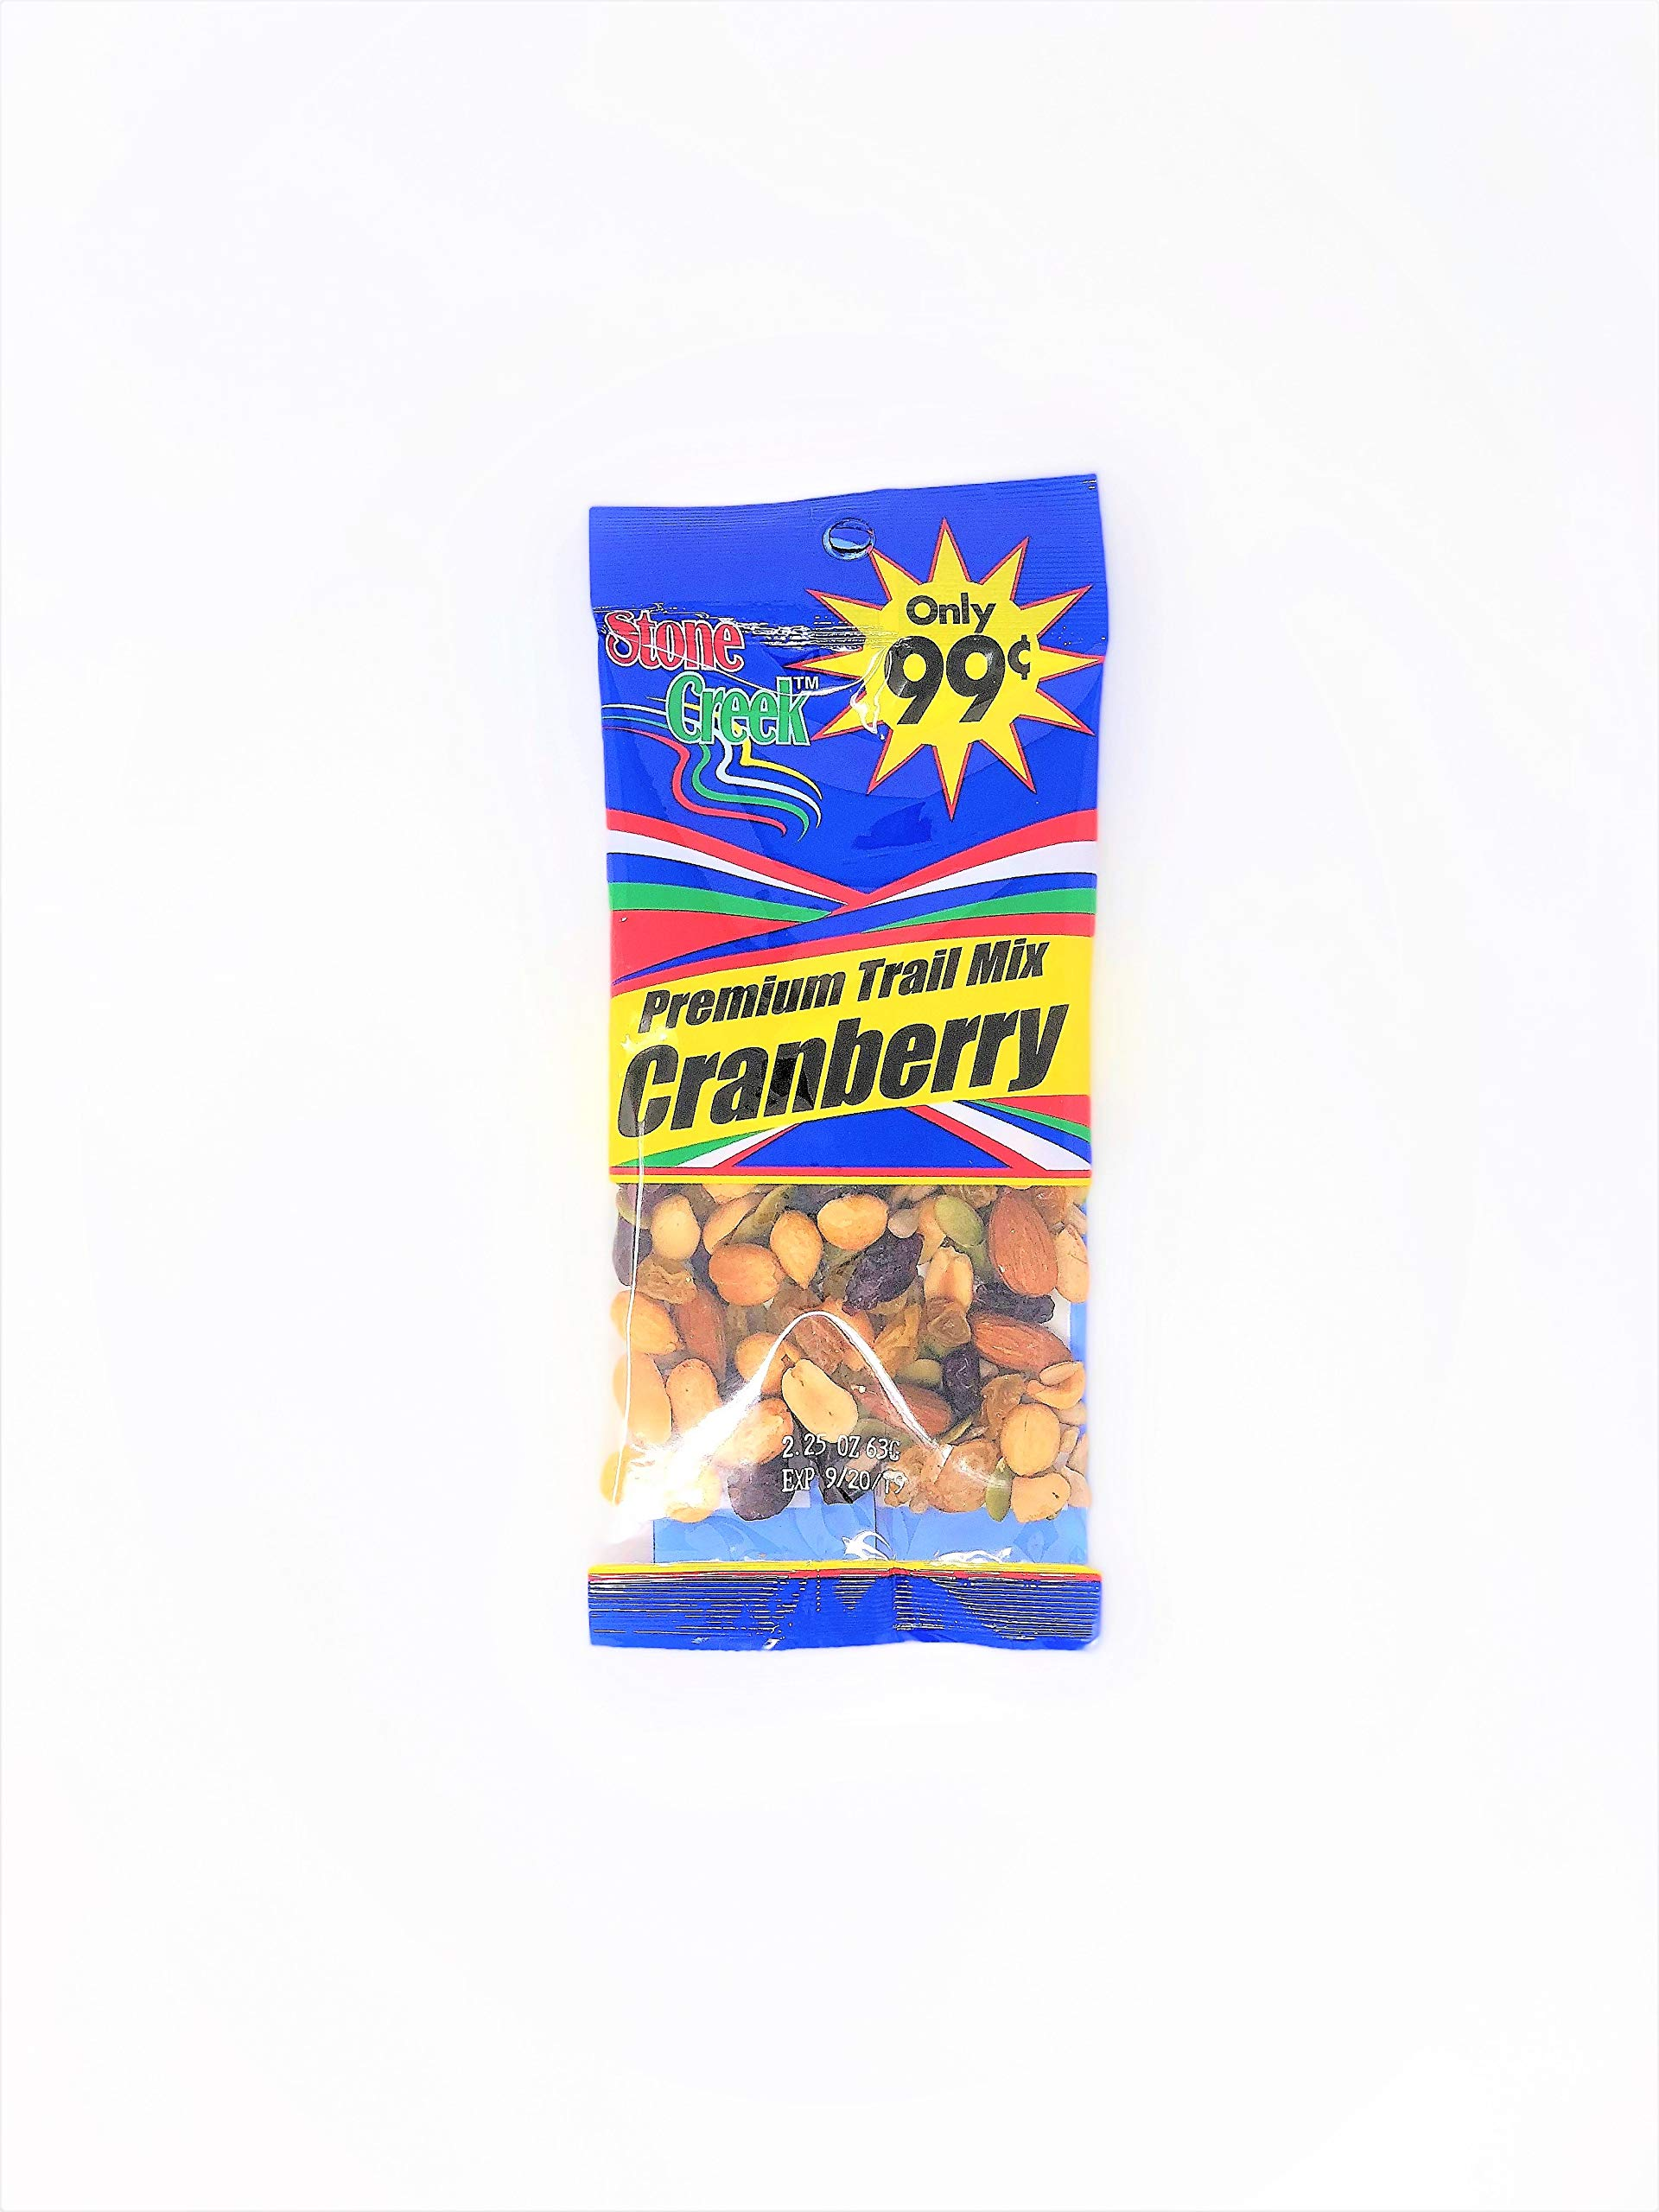 Stone Creek Premium Trail Mix Cranberry 2.25 Ounce (Pack of 12)